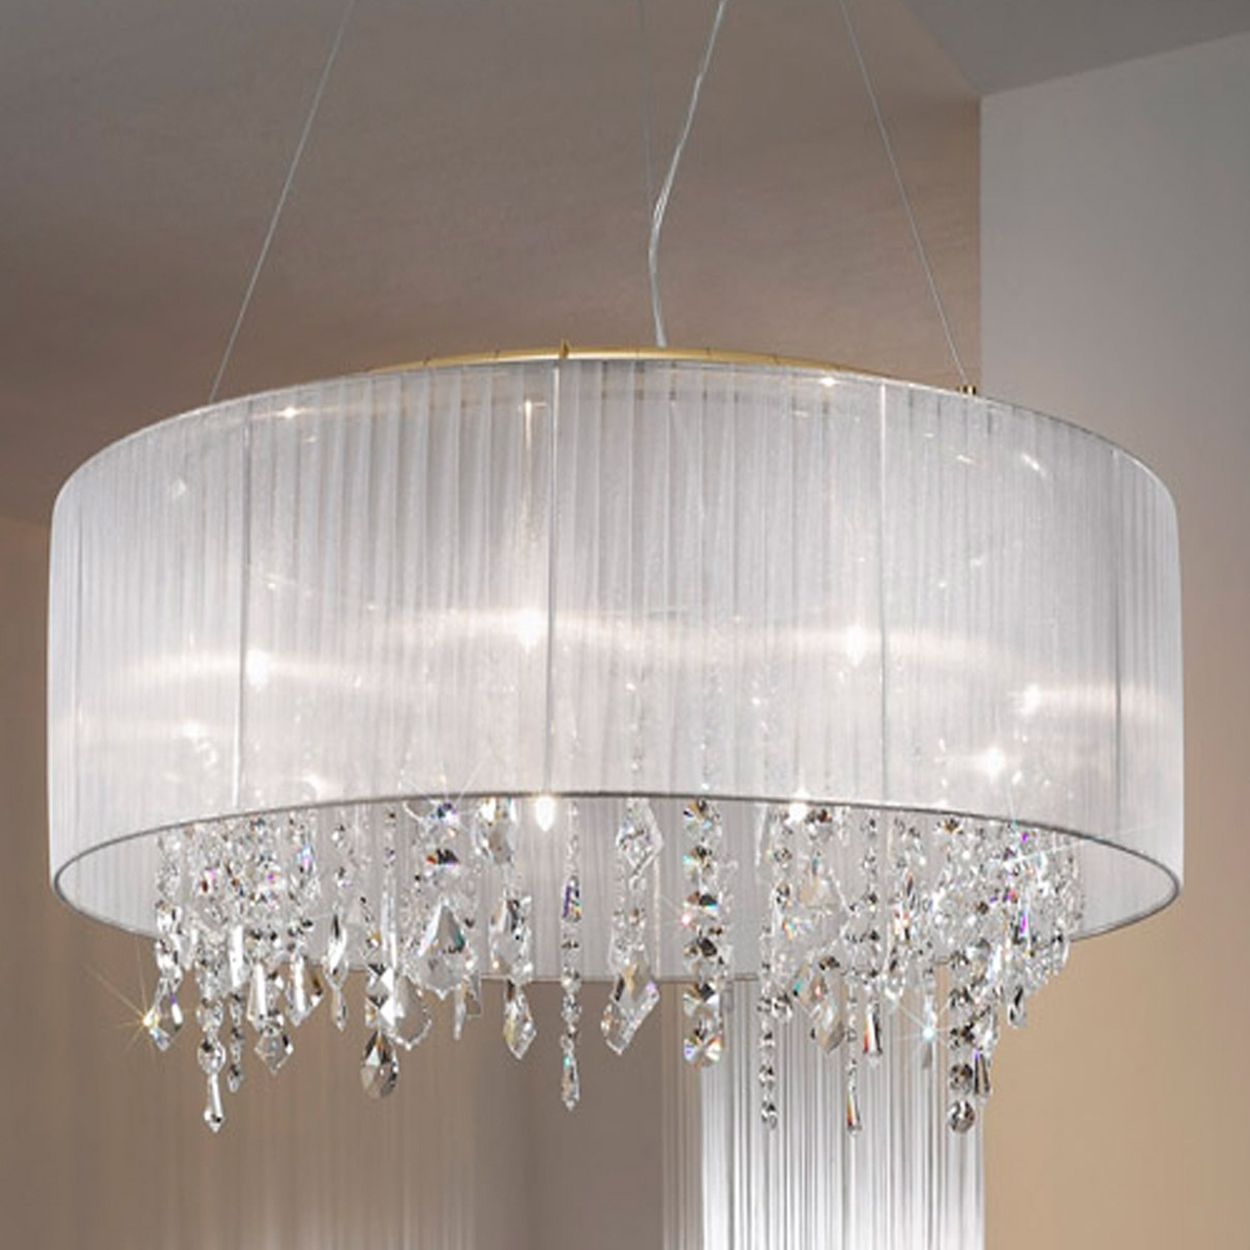 Decorative Lamp Shades For Chandeliers Best Home Decor Inspirations Intended For Chandeliers With Lamp Shades (Image 14 of 25)